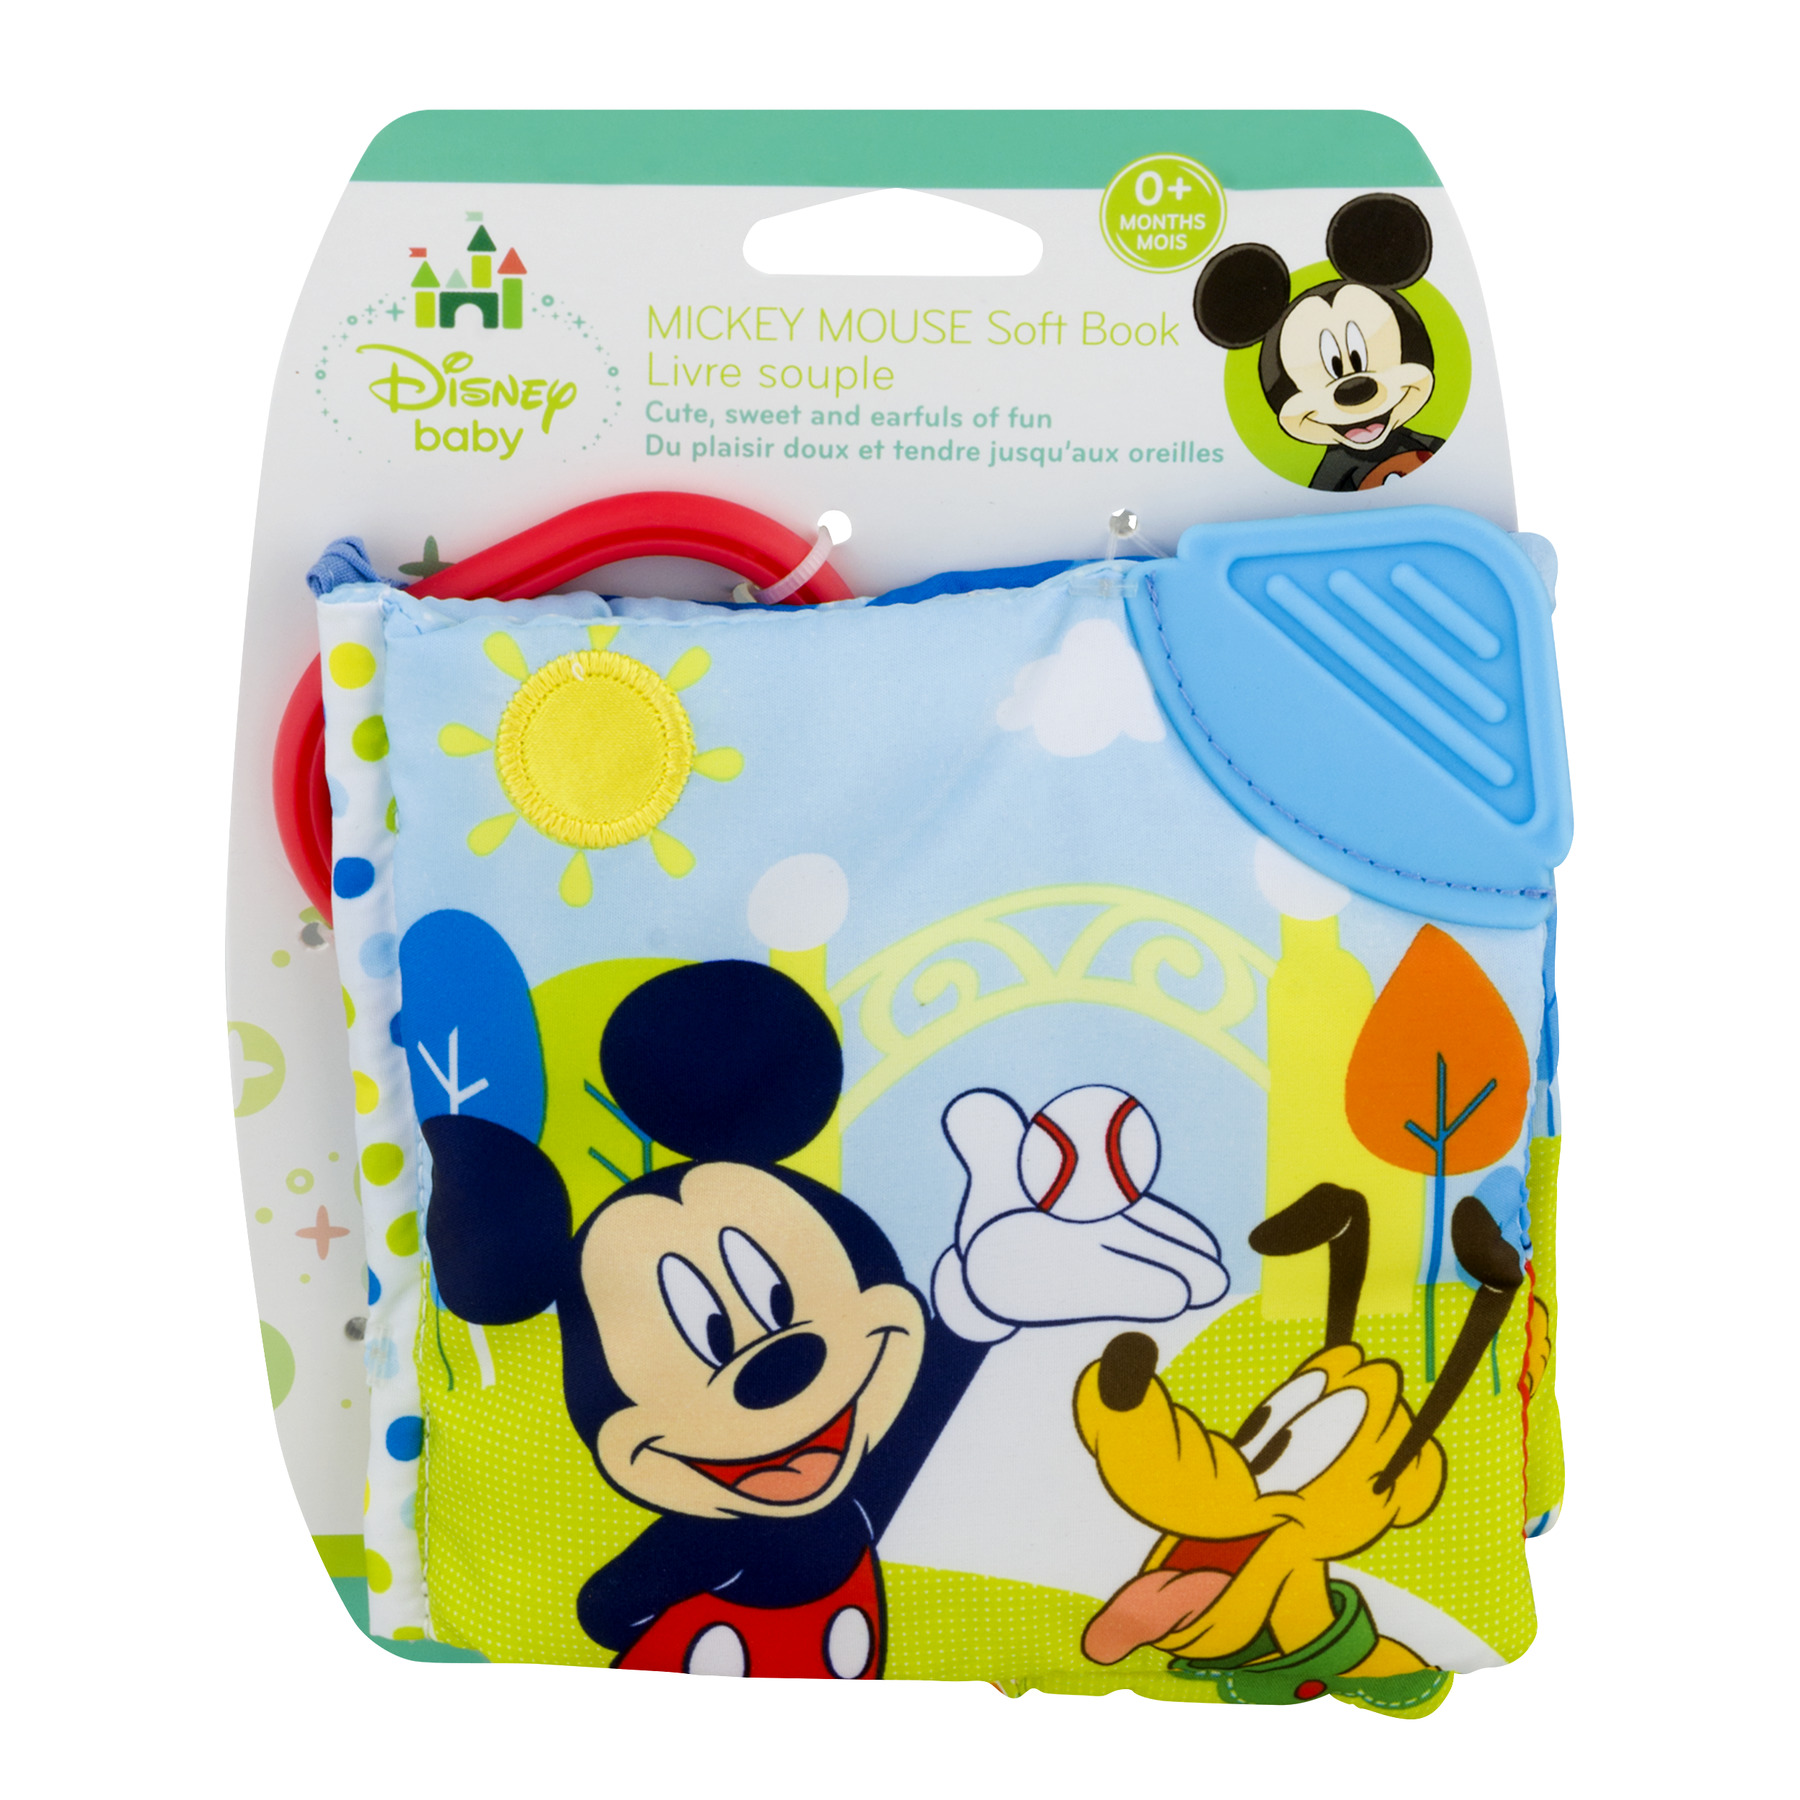 Disney Baby Mickey Mouse Soft Book 0+ Months, 1.0 CT by Kids Preferred